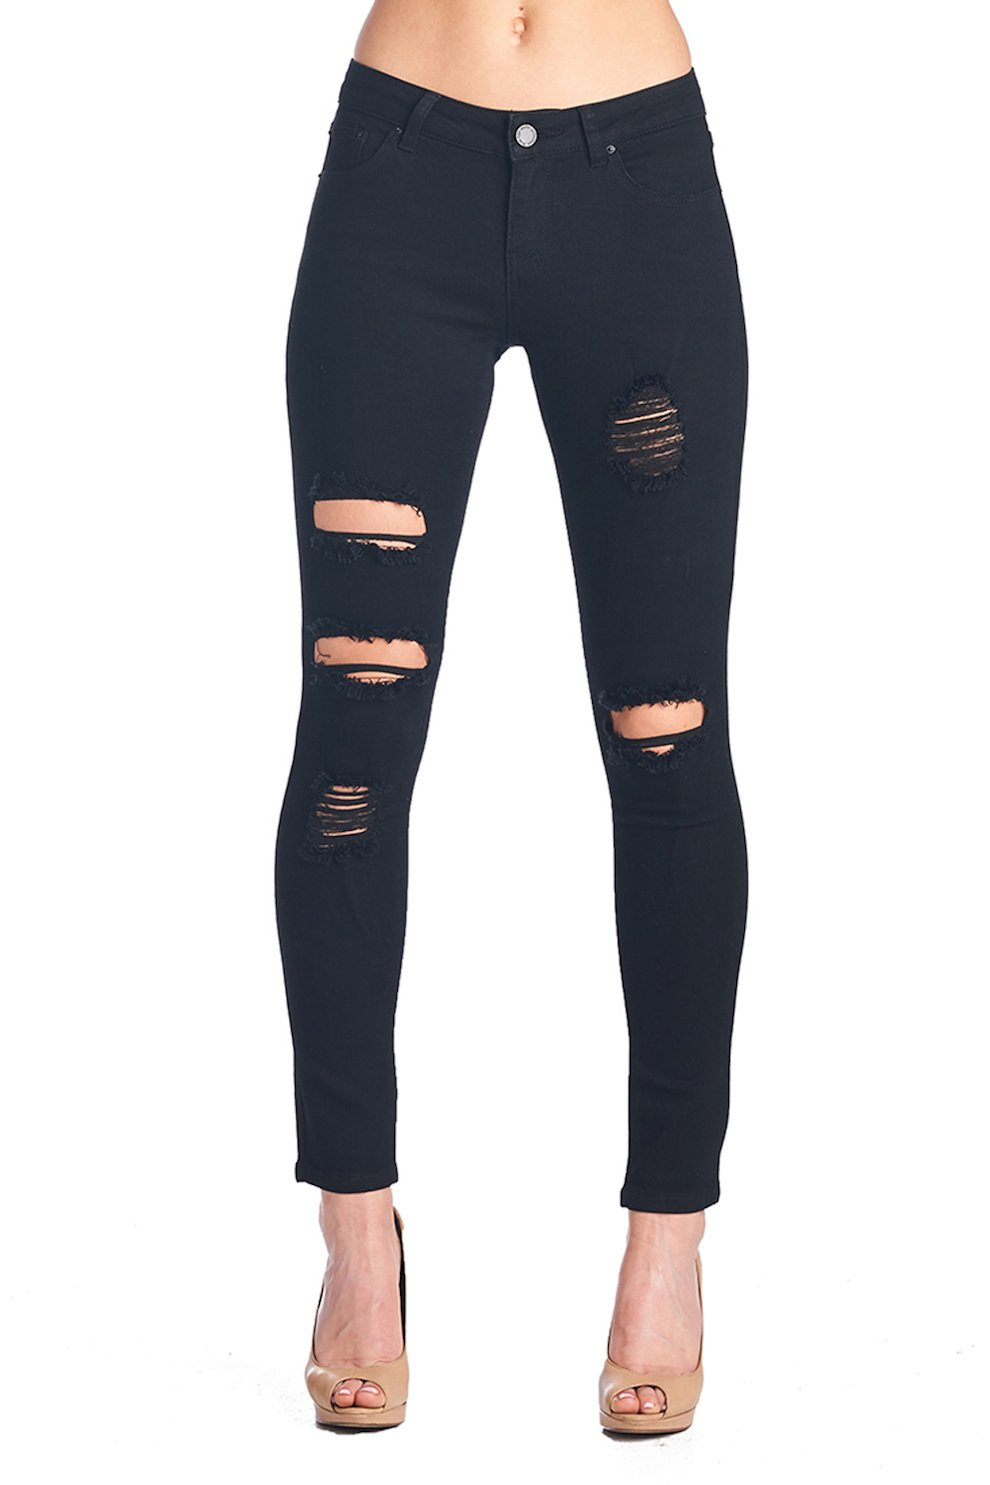 f694e7c6d4870 ICONICC Women s Butt Lifting Skinny Jeans Destroyed Ripped Stretch Denim